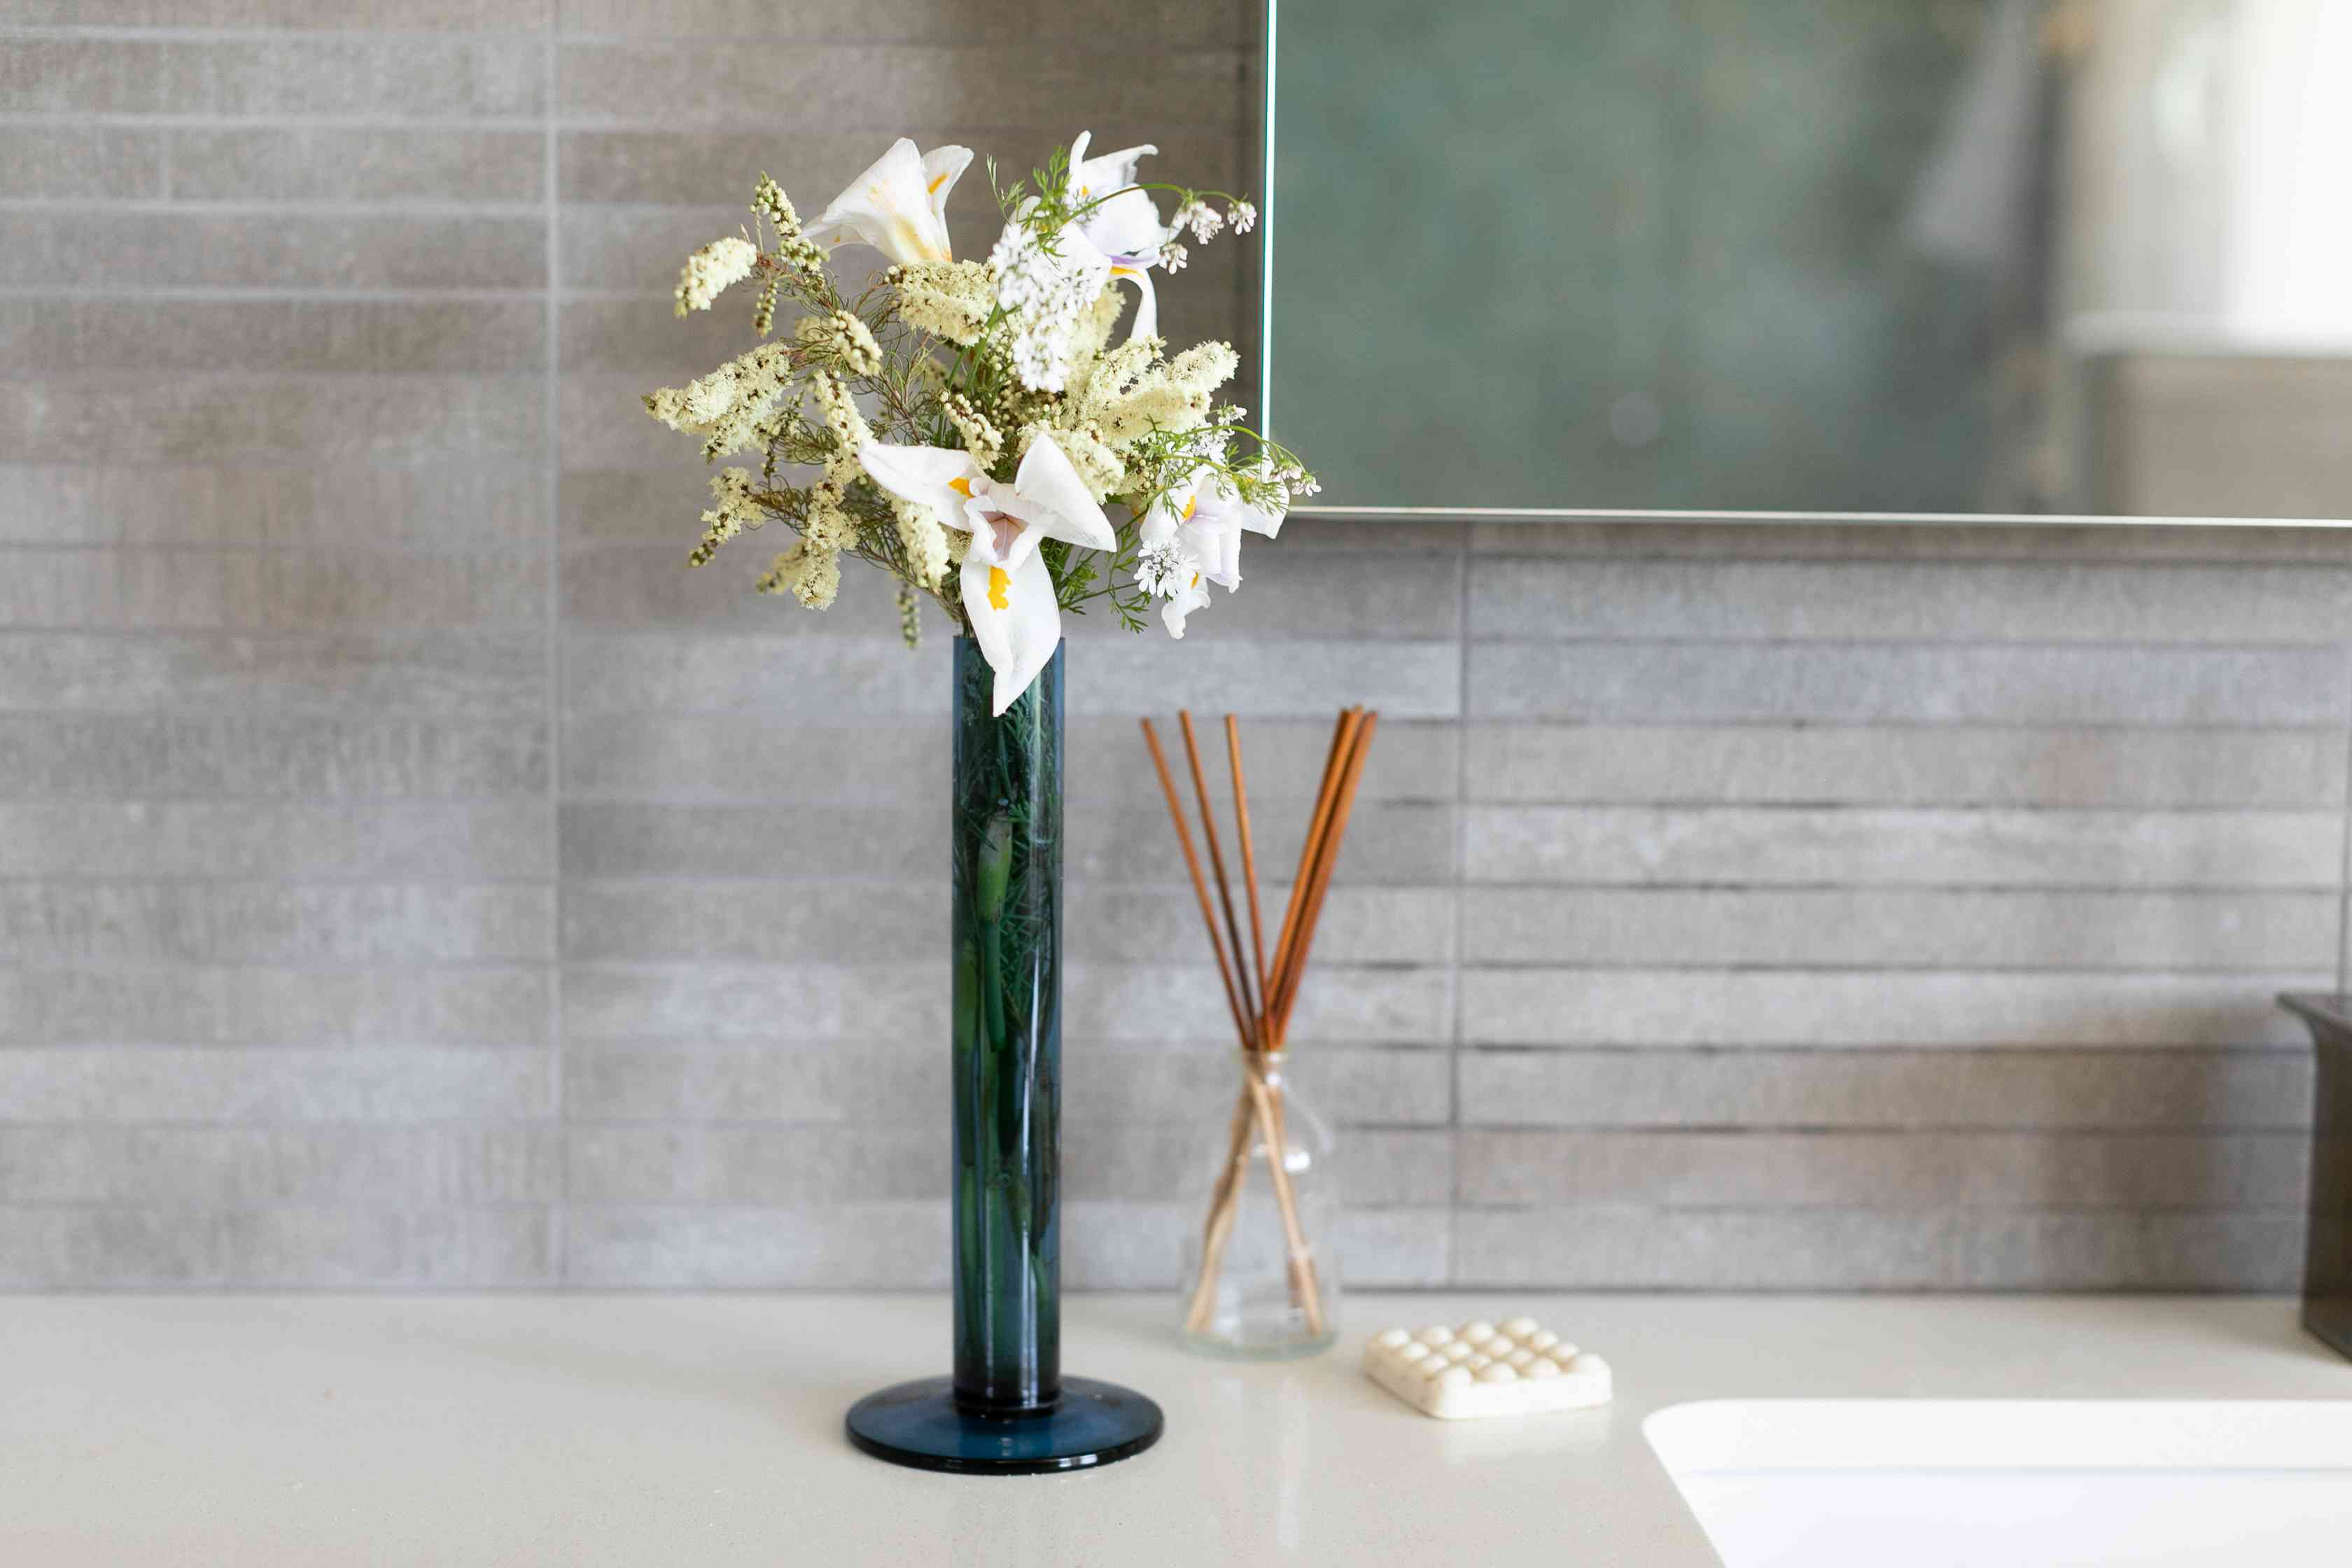 Reed diffuser next to massage soap bar and vase with flowers in guest bathroom